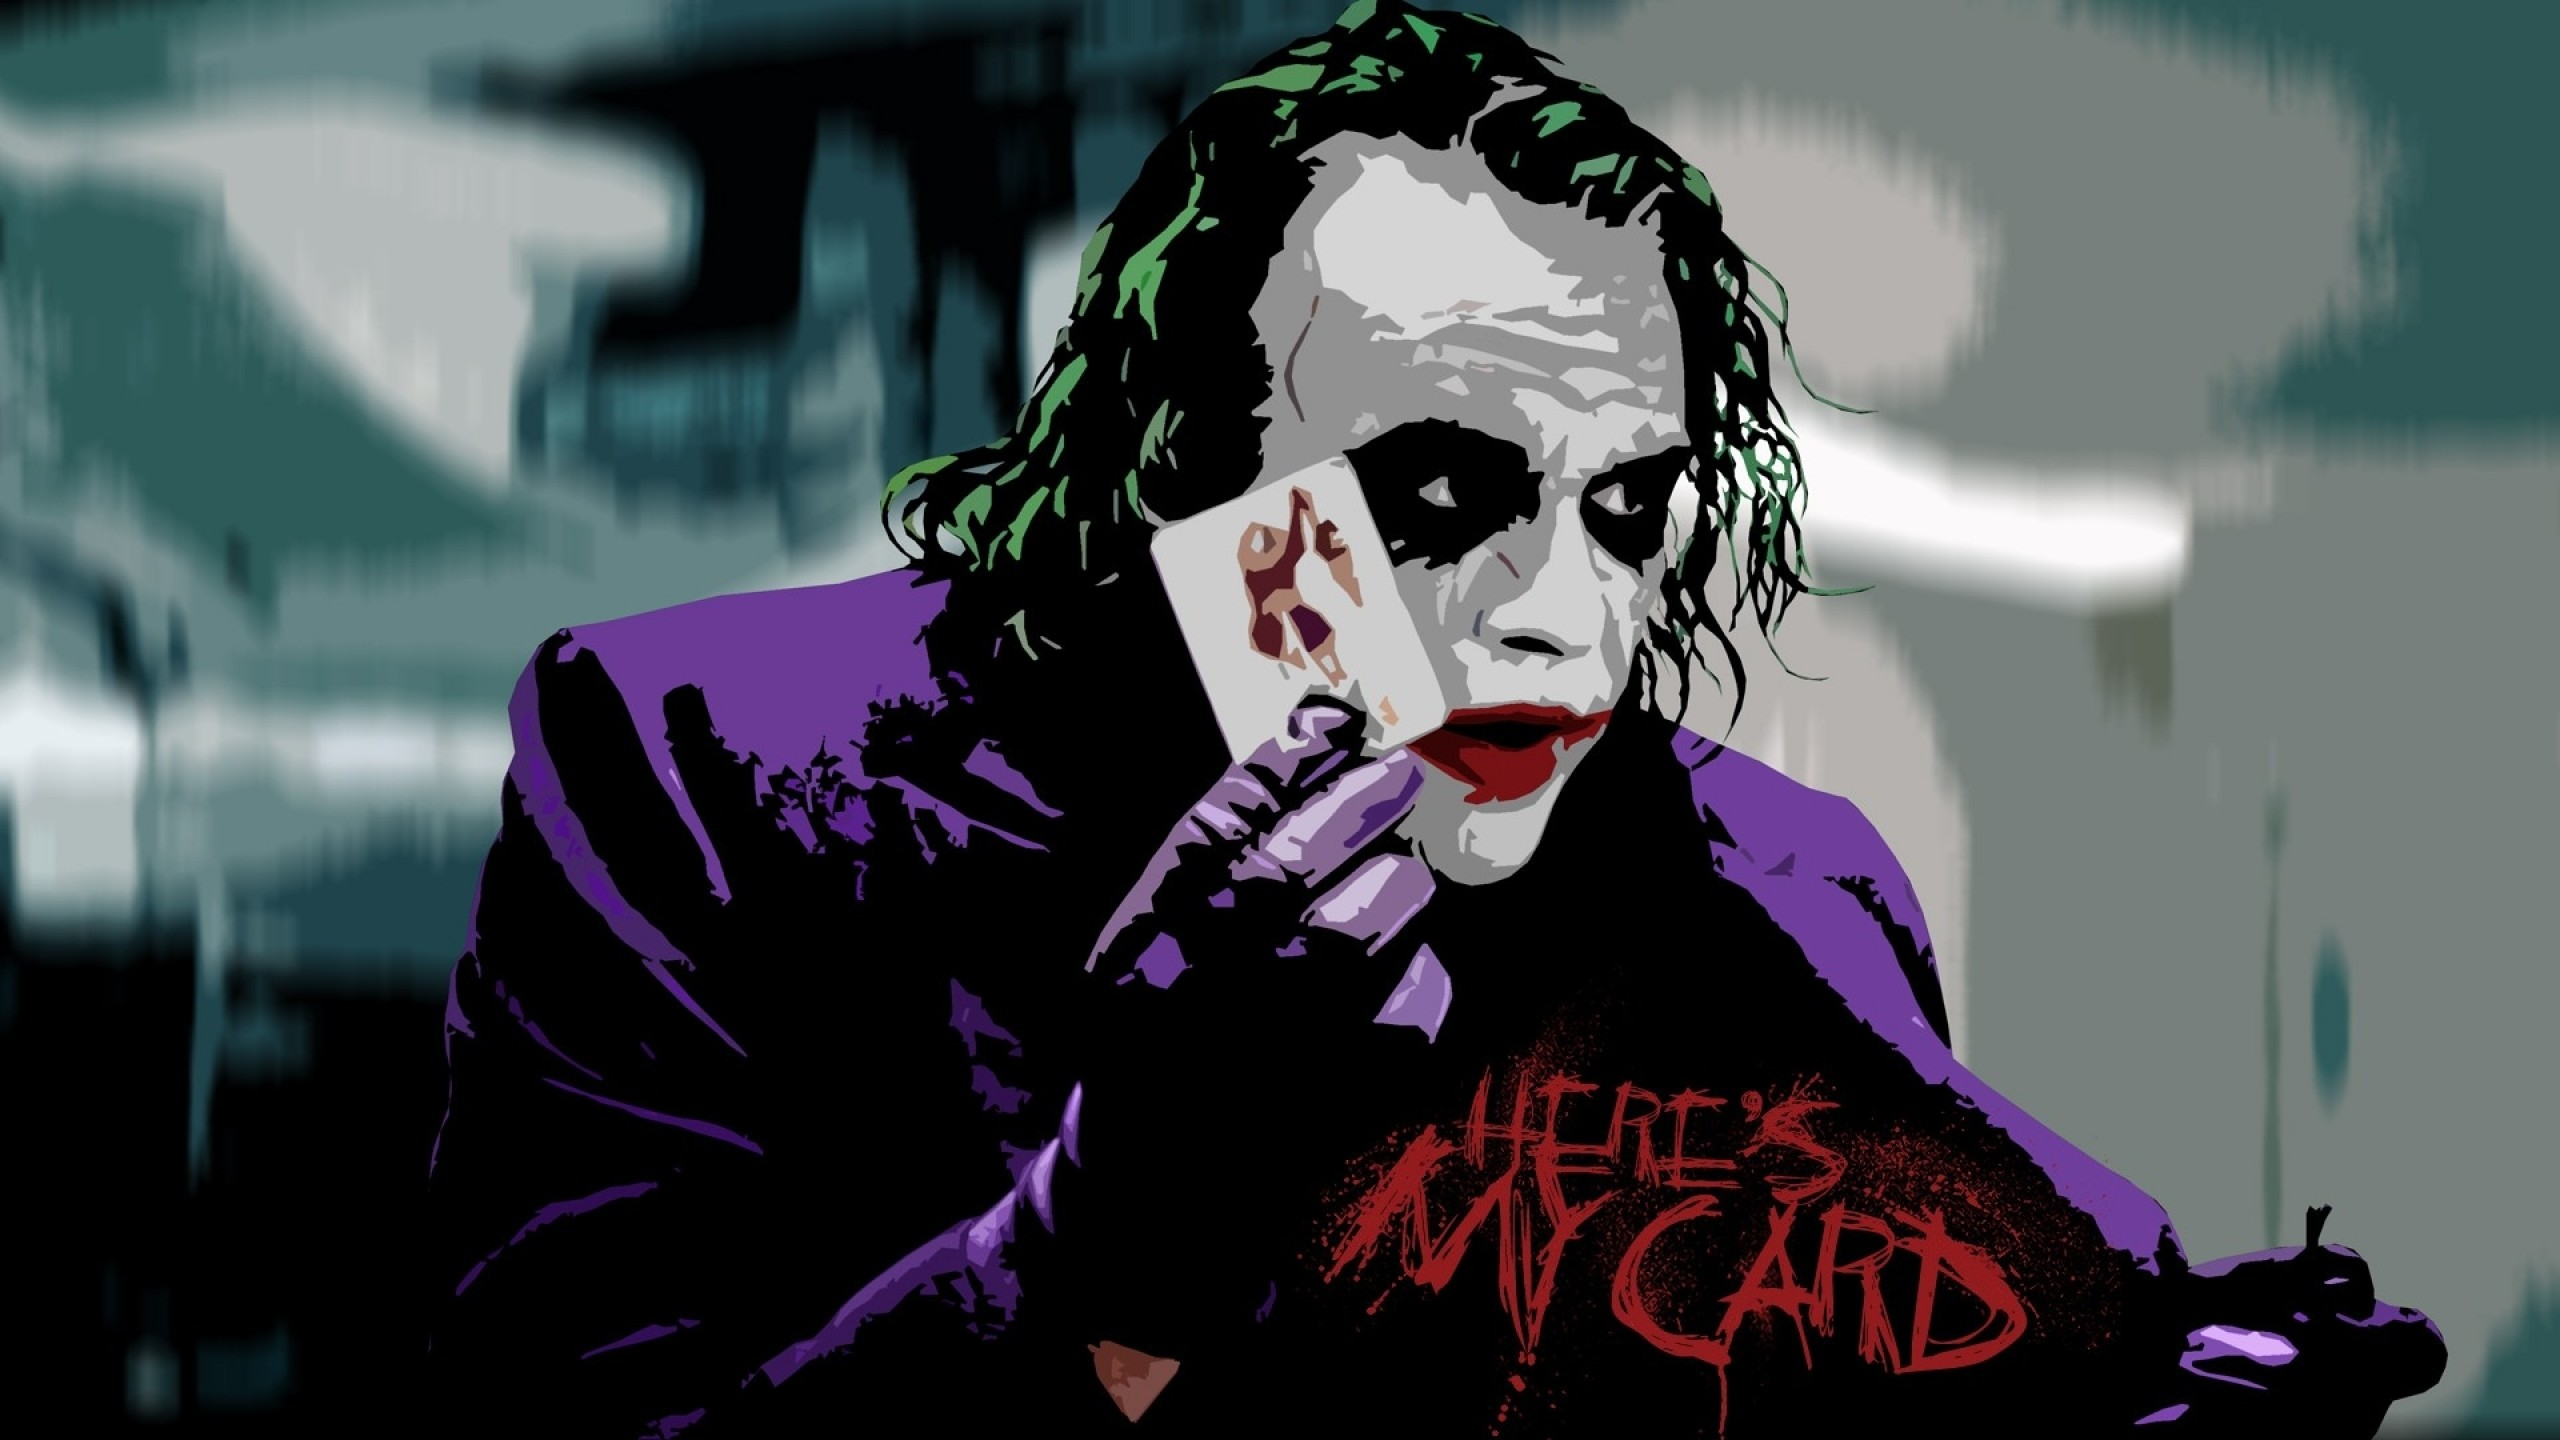 Joker Card Wallpapers 66 Images